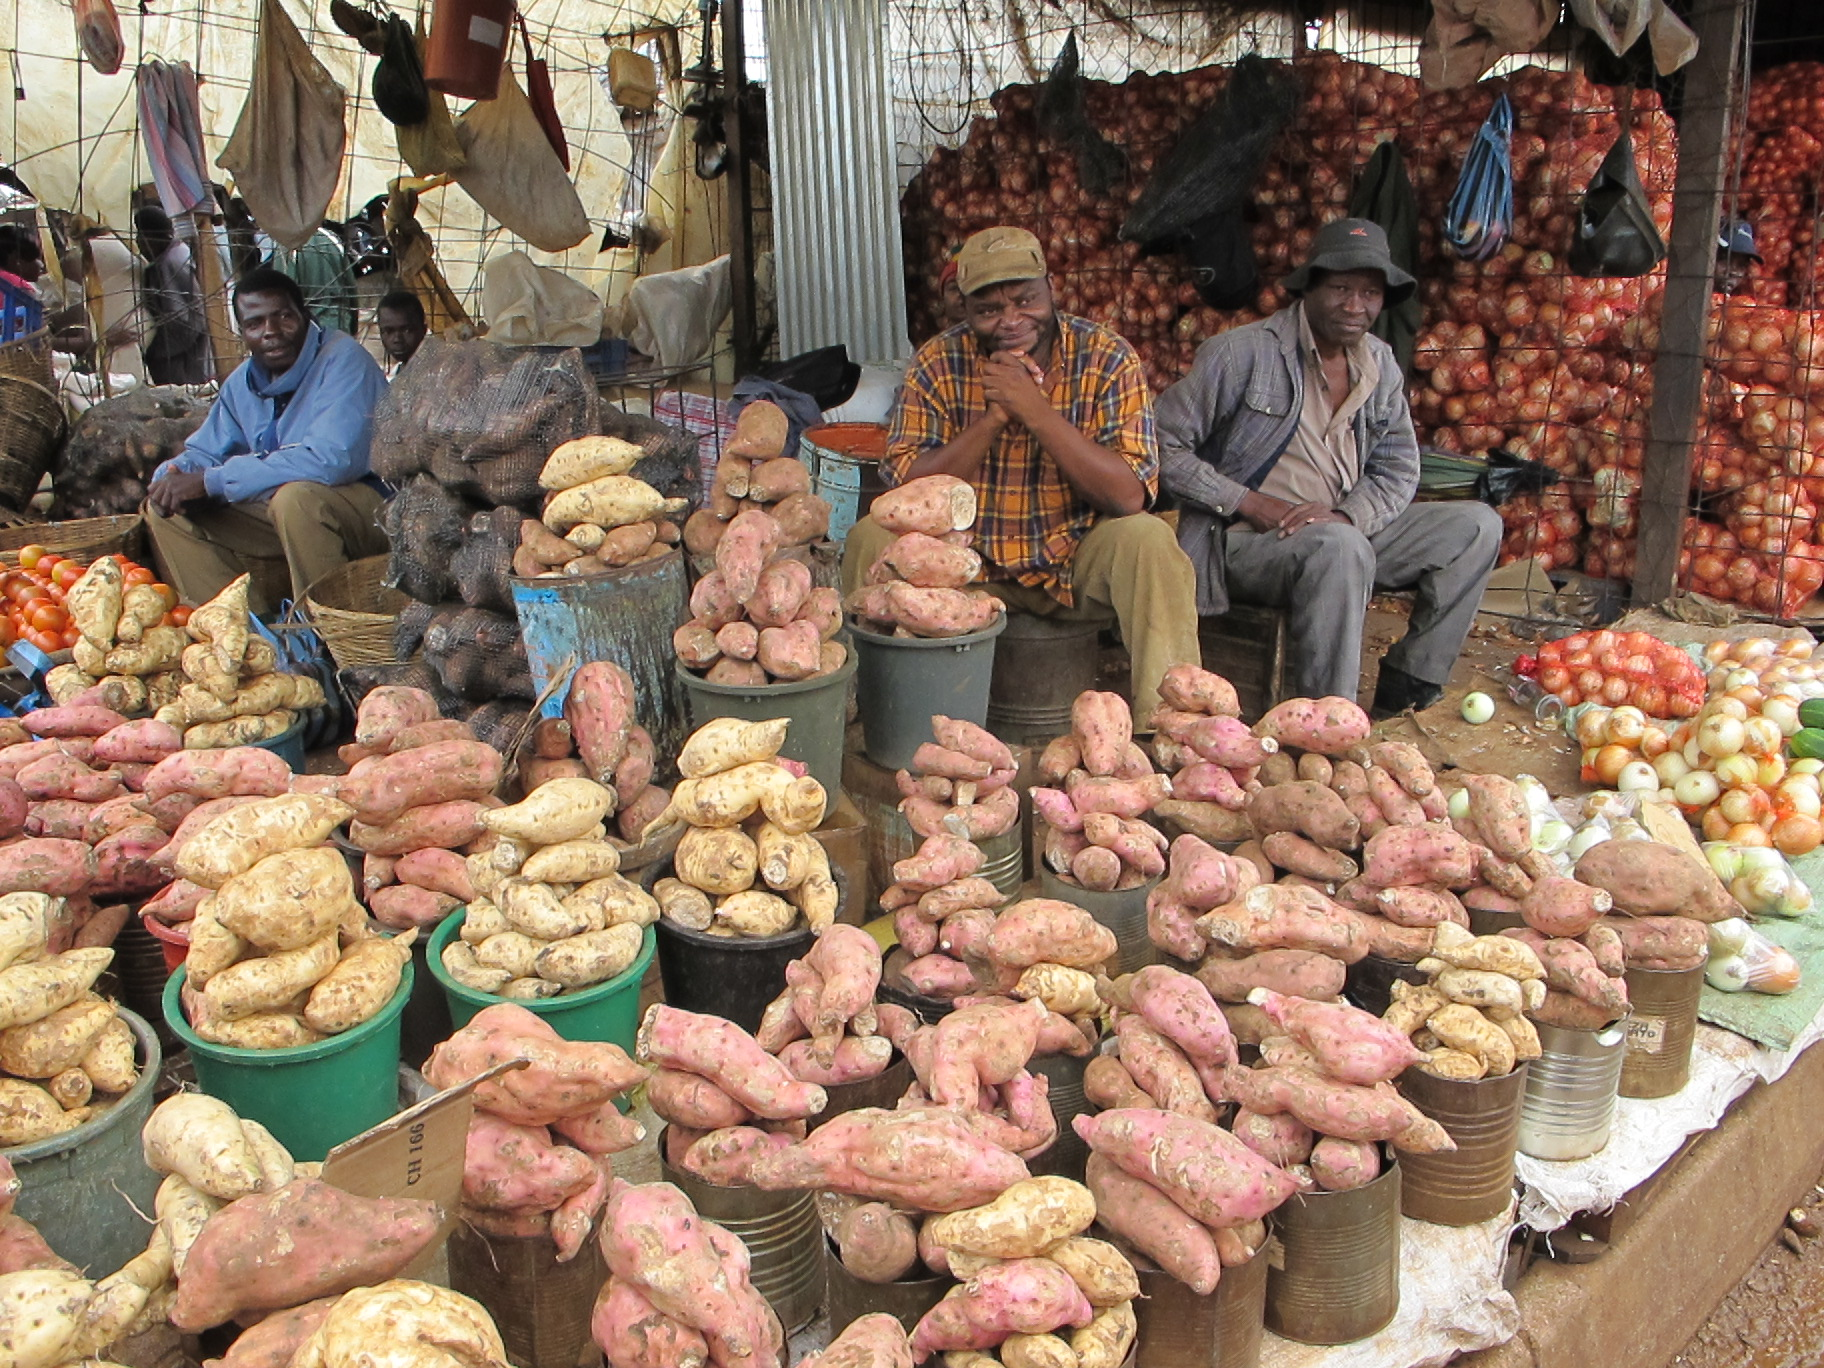 Market Day in Zimbabwe, yes I purchased such a potato - apparently they are eco.